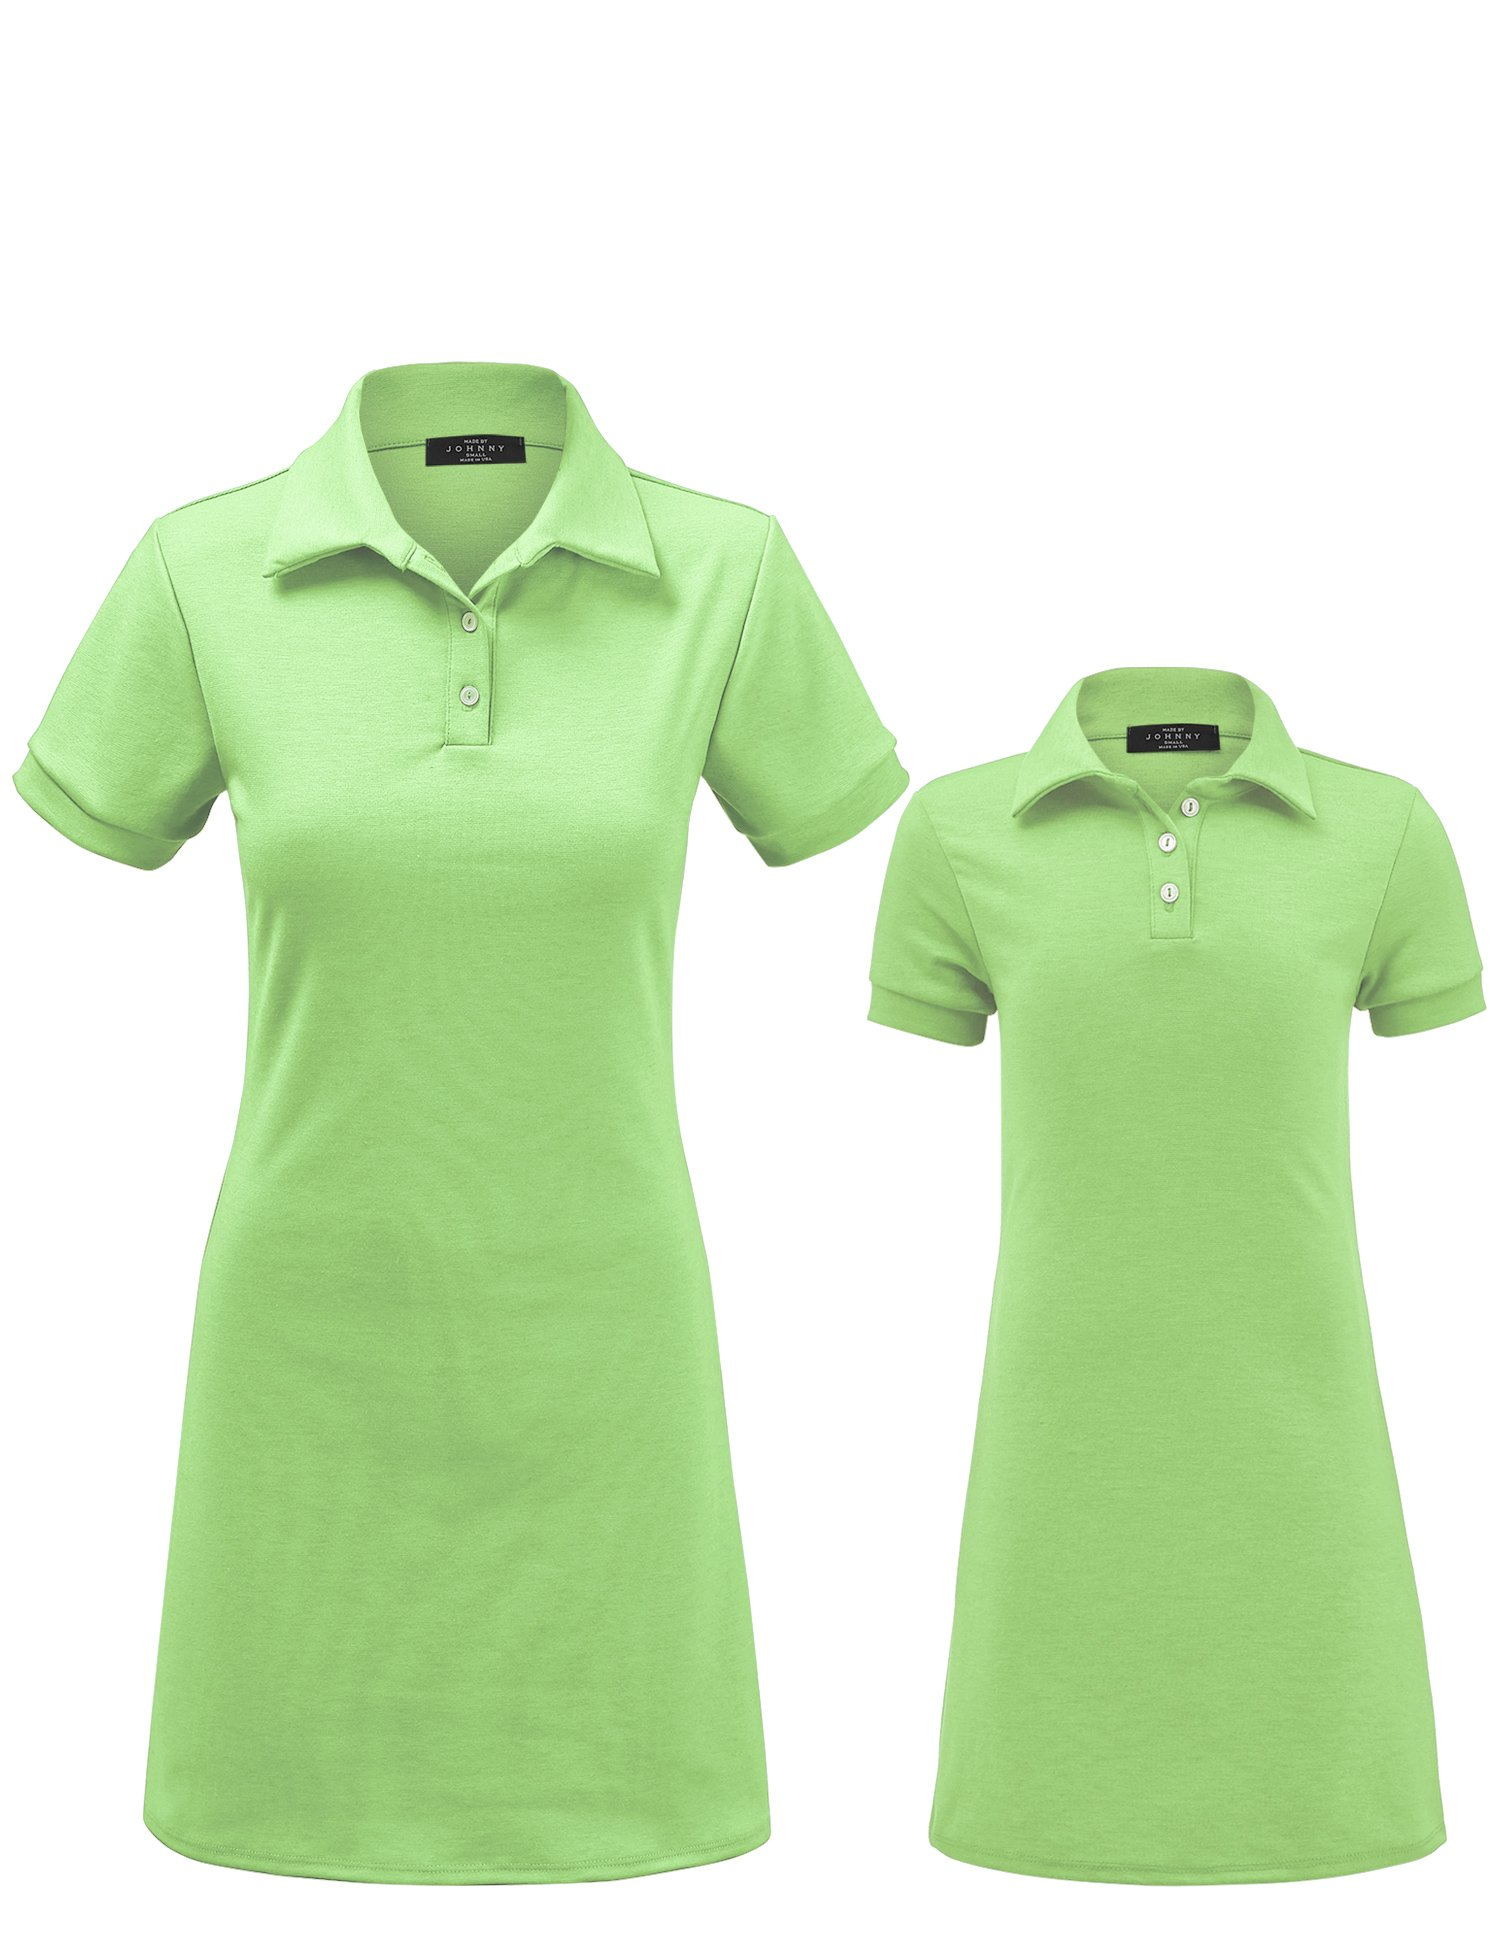 MBJ Kids KDR1511 Mommy and Me Short Sleeve Polo Dress - Made in USA KM Mint